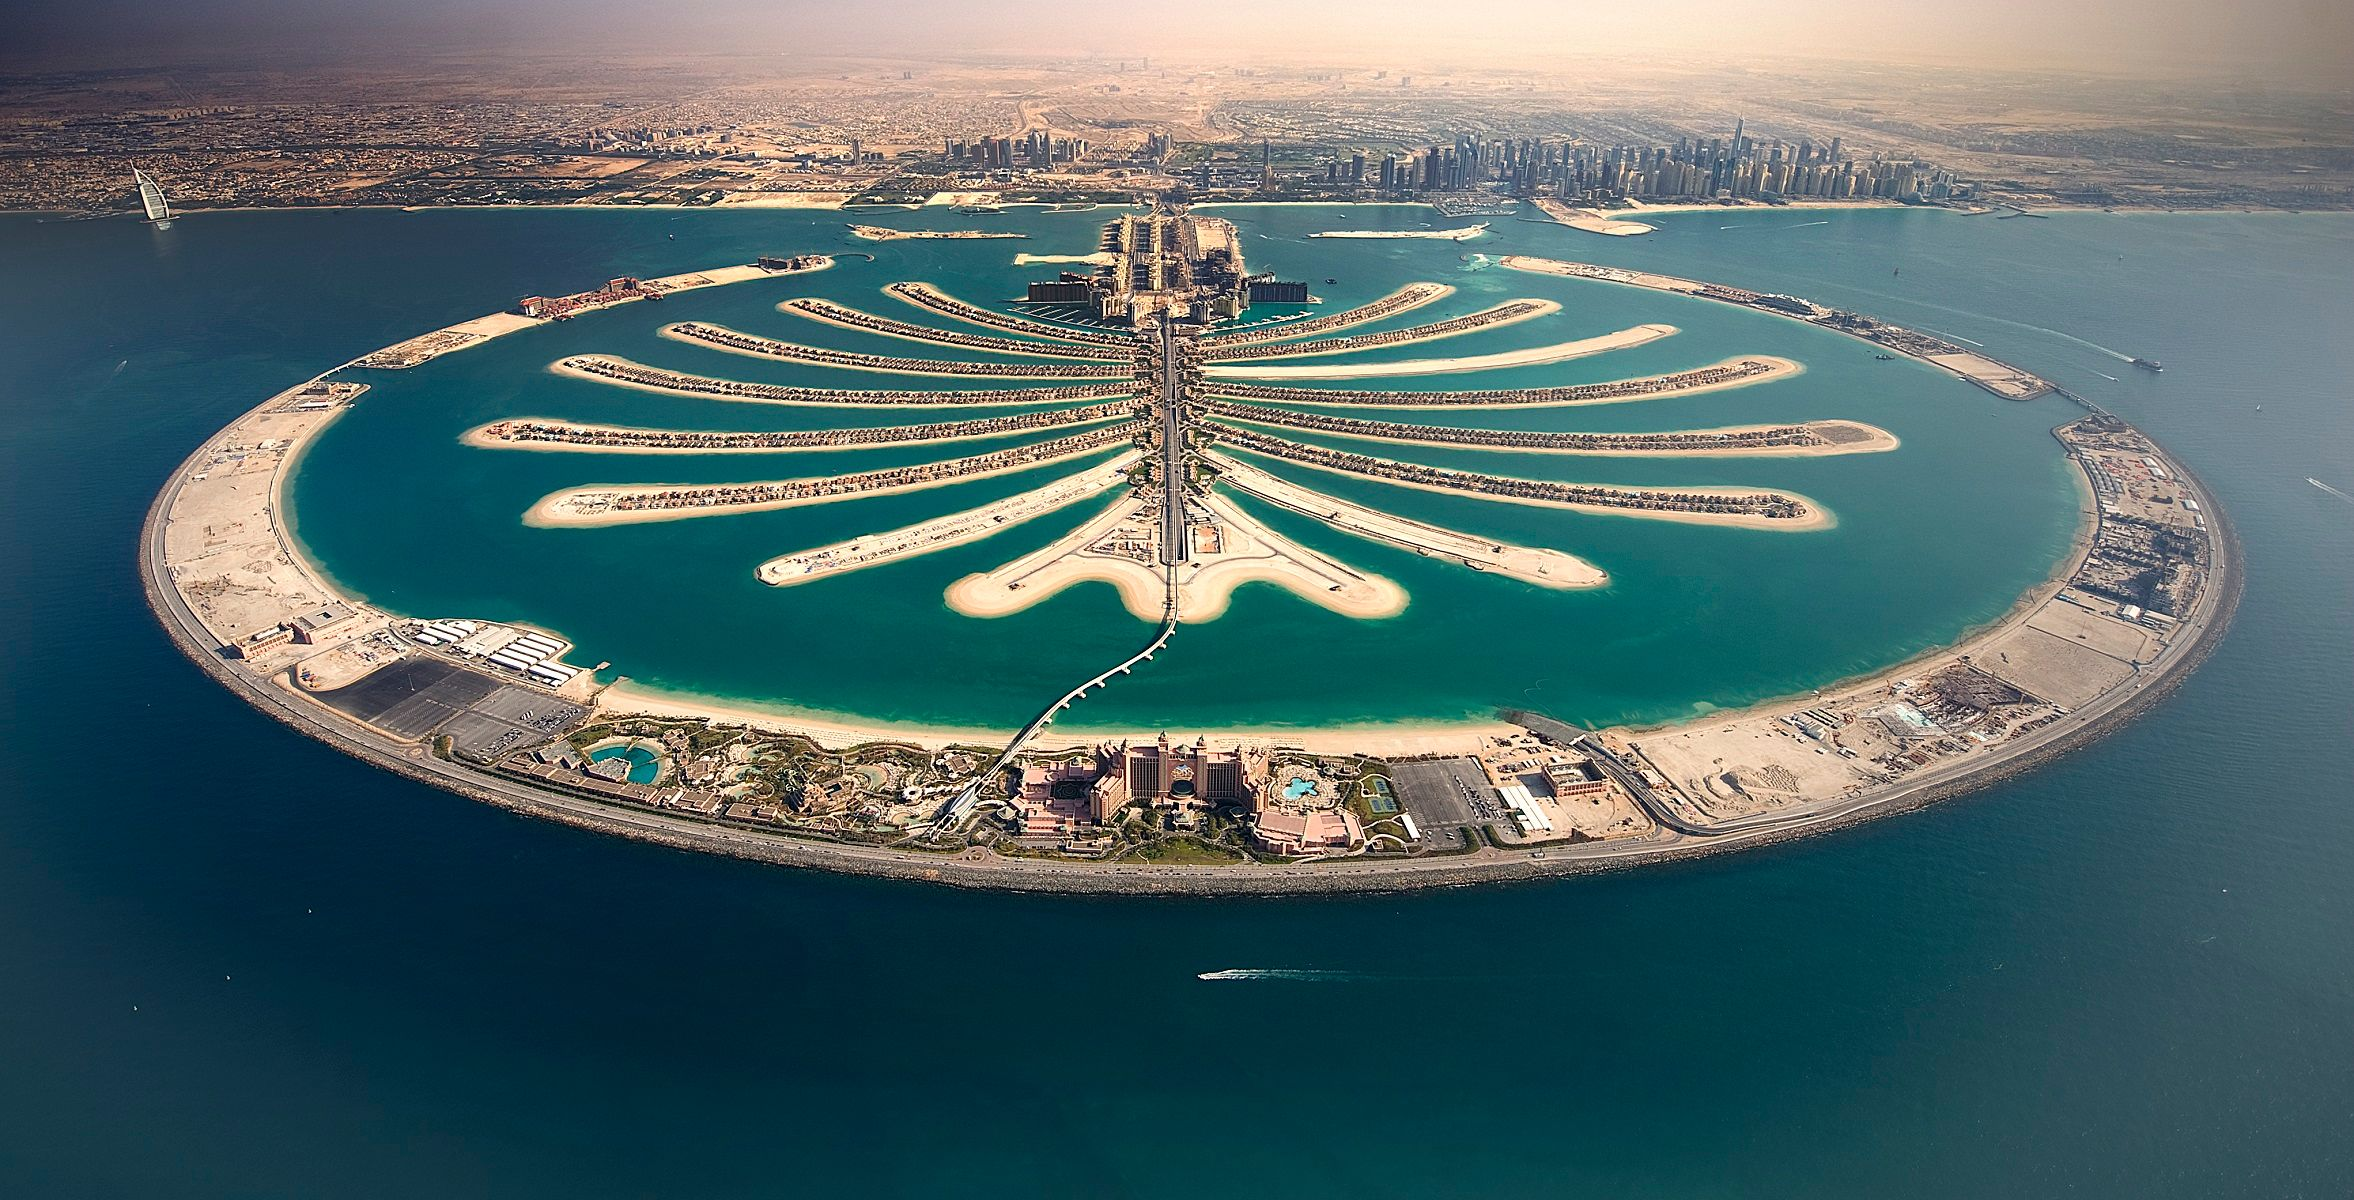 Top 3 Attractions of Dubai's Palm Jumeirah